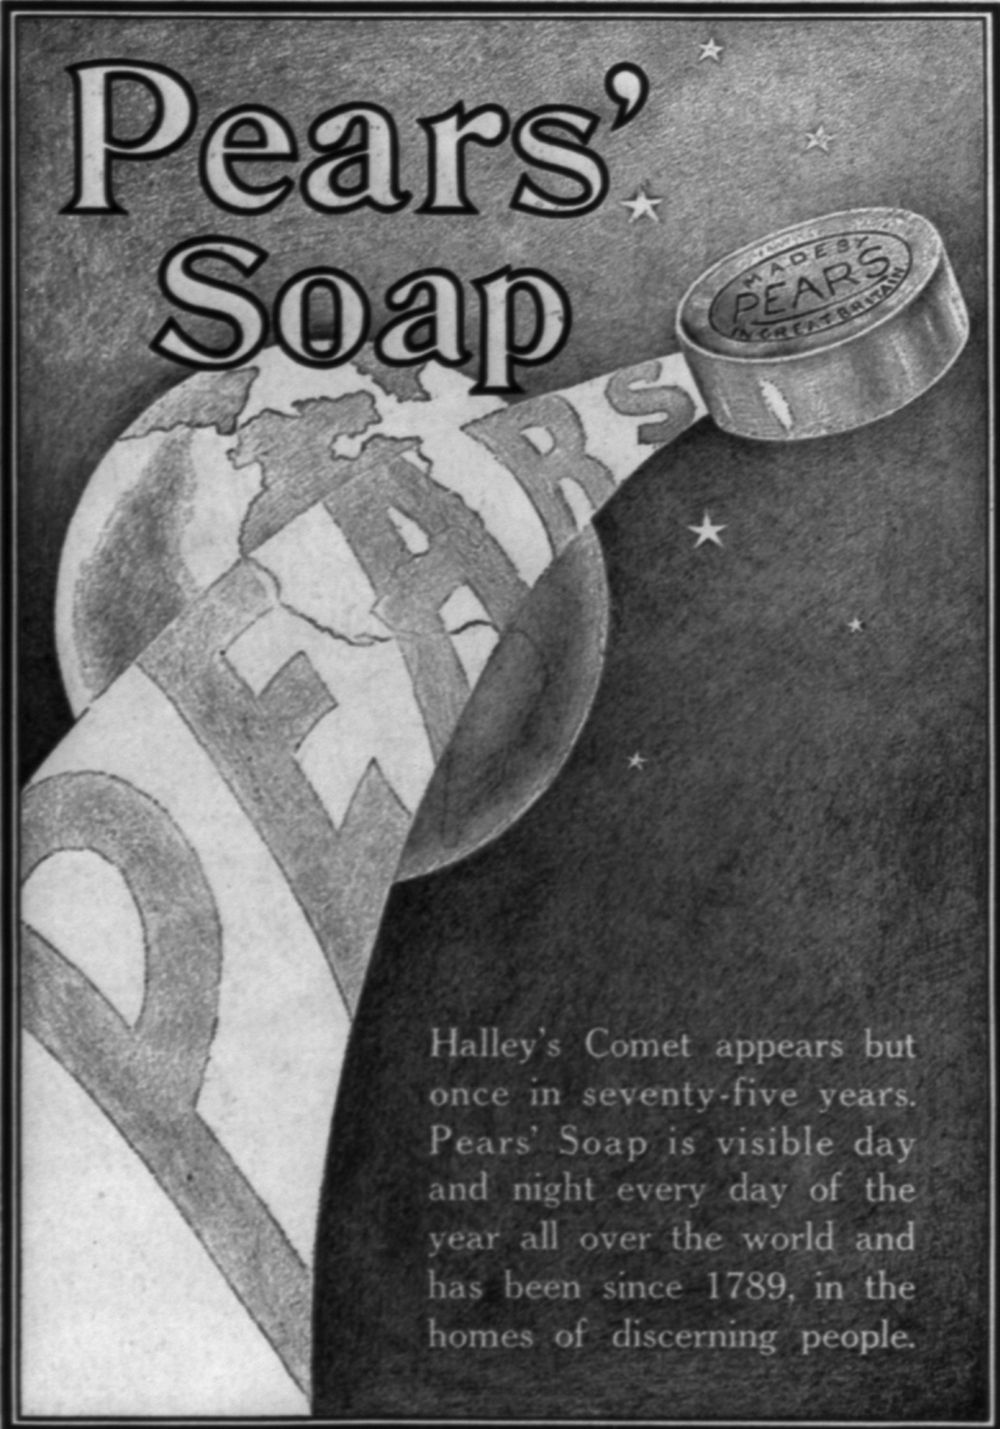 Pears' Soap advertisement, 1910.